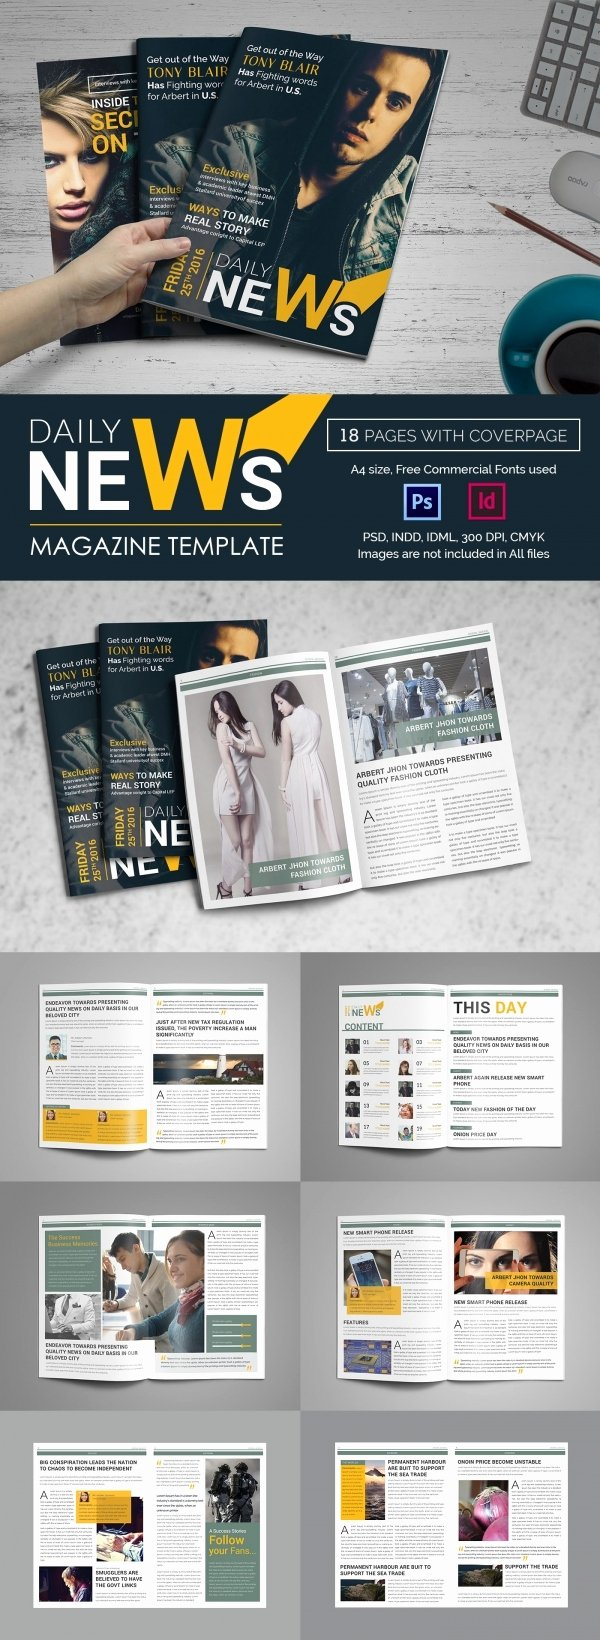 Microsoft Publisher Newspaper Templates Inspirational Download Free Newspaper Template for Microsoft Publisher